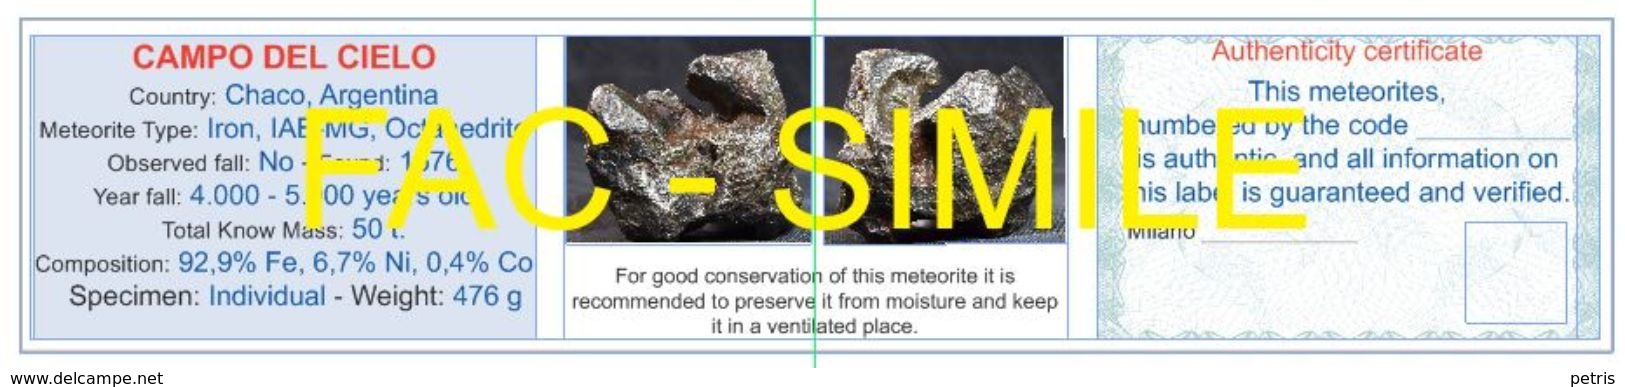 Meteorite Campo Del Cielo, Argentina 427 G. With Authenticity Certificate - Lot. M019 - Meteorites